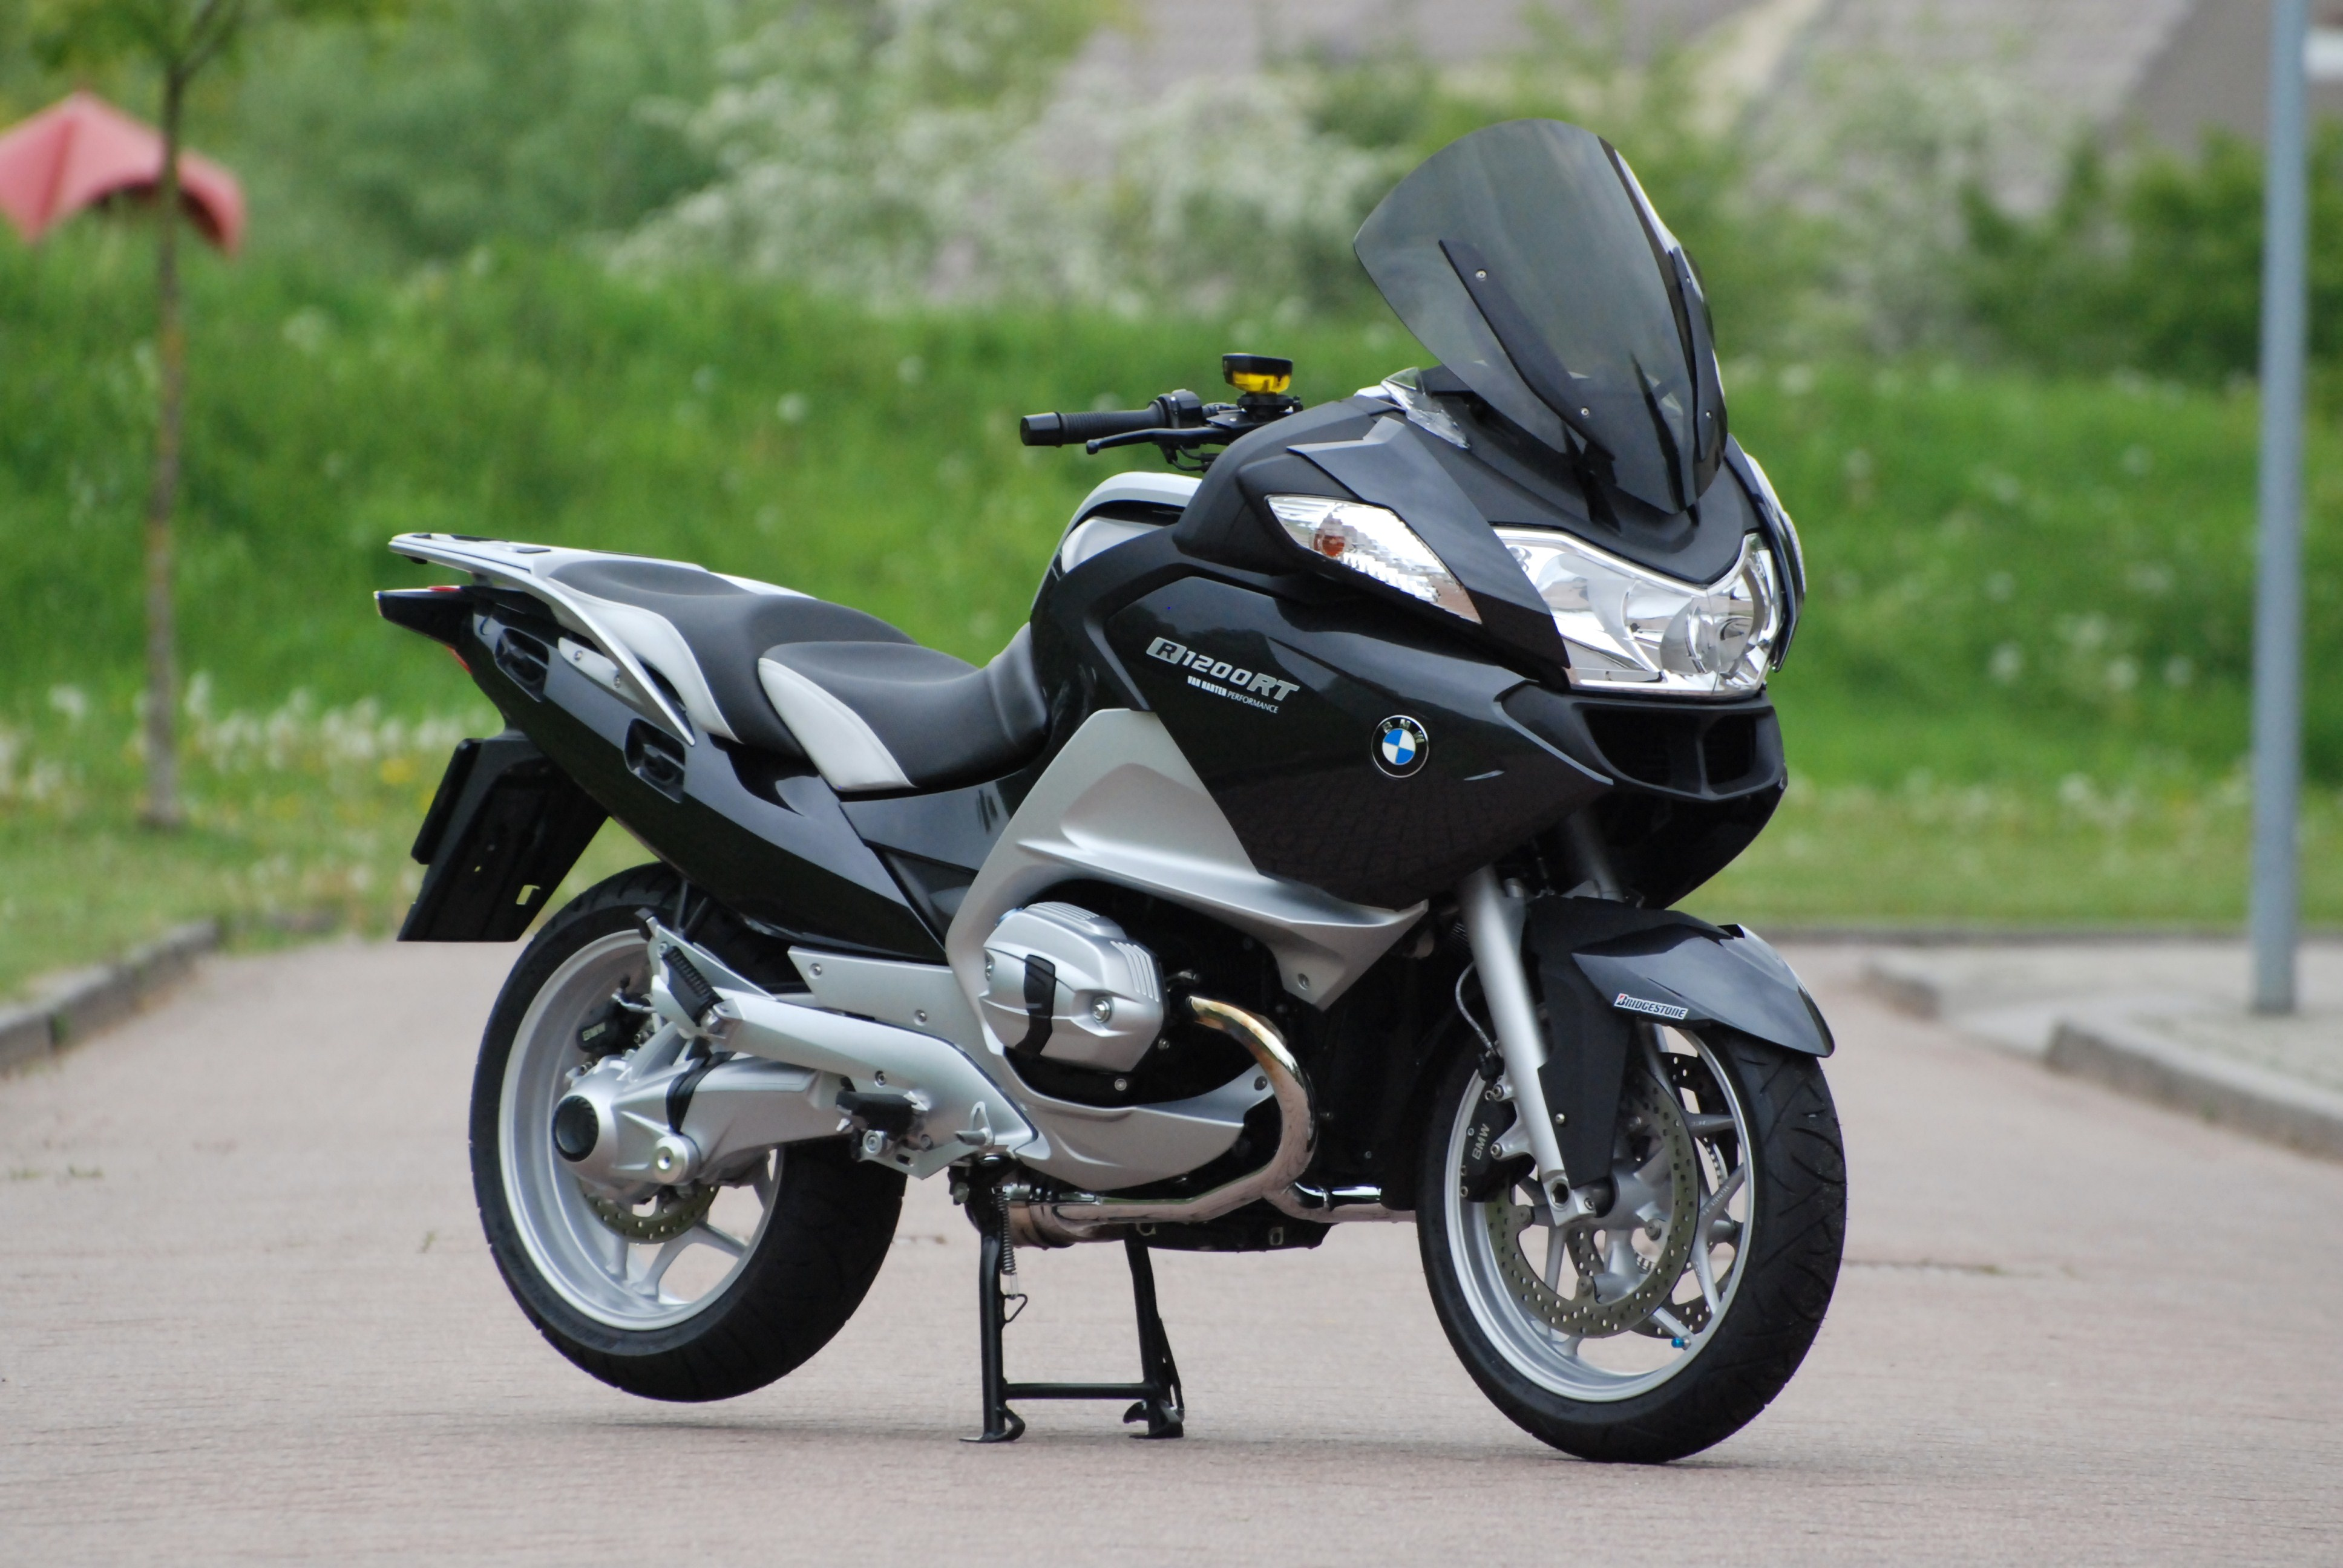 BMW R1150RT images #7792